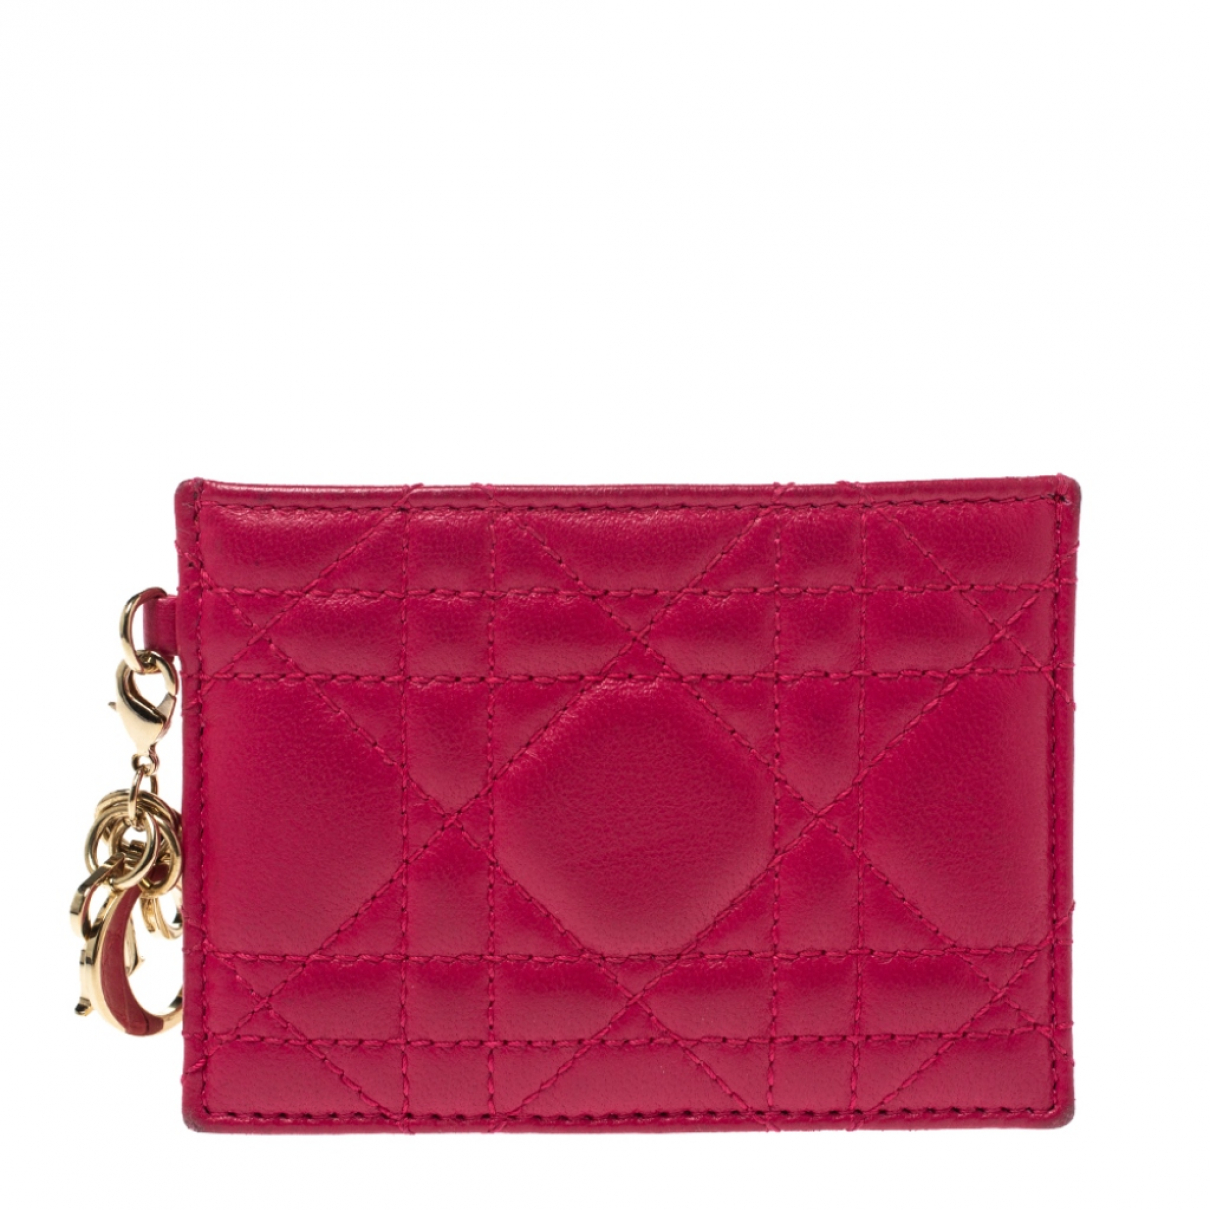 Dior Lady Dior Pink Leather wallet for Women N